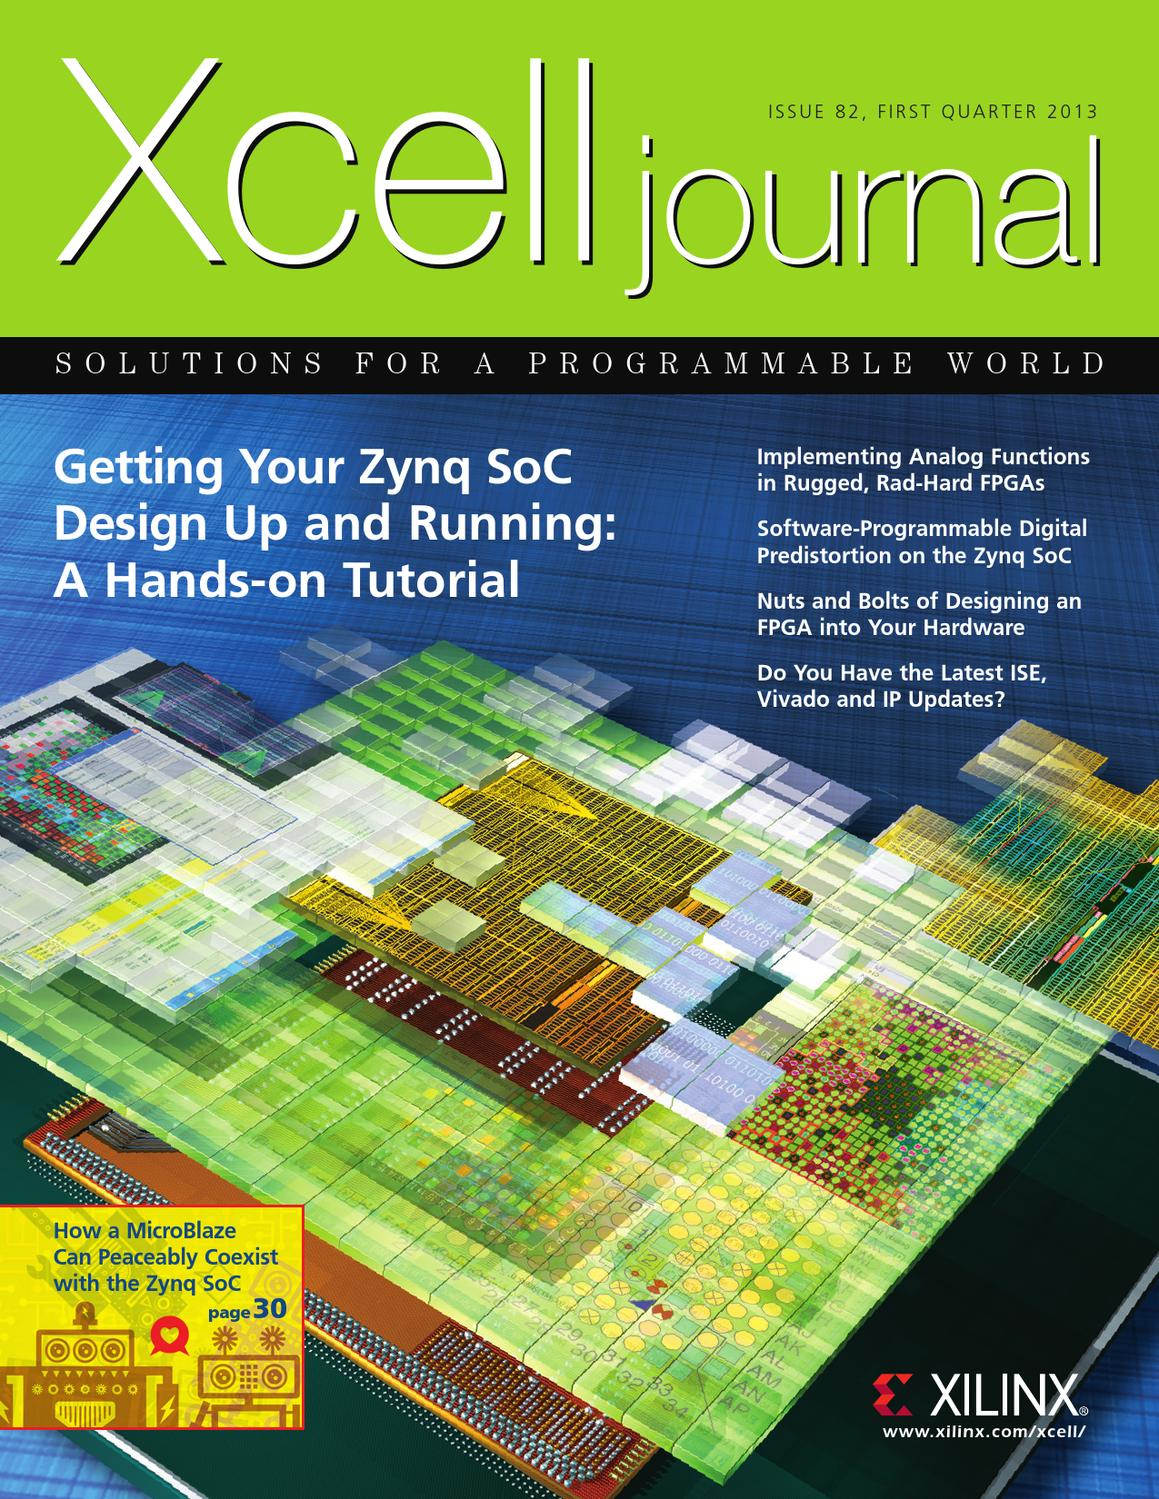 Xcell Journal issue 82 by Xilinx Xcell Publications - issuu